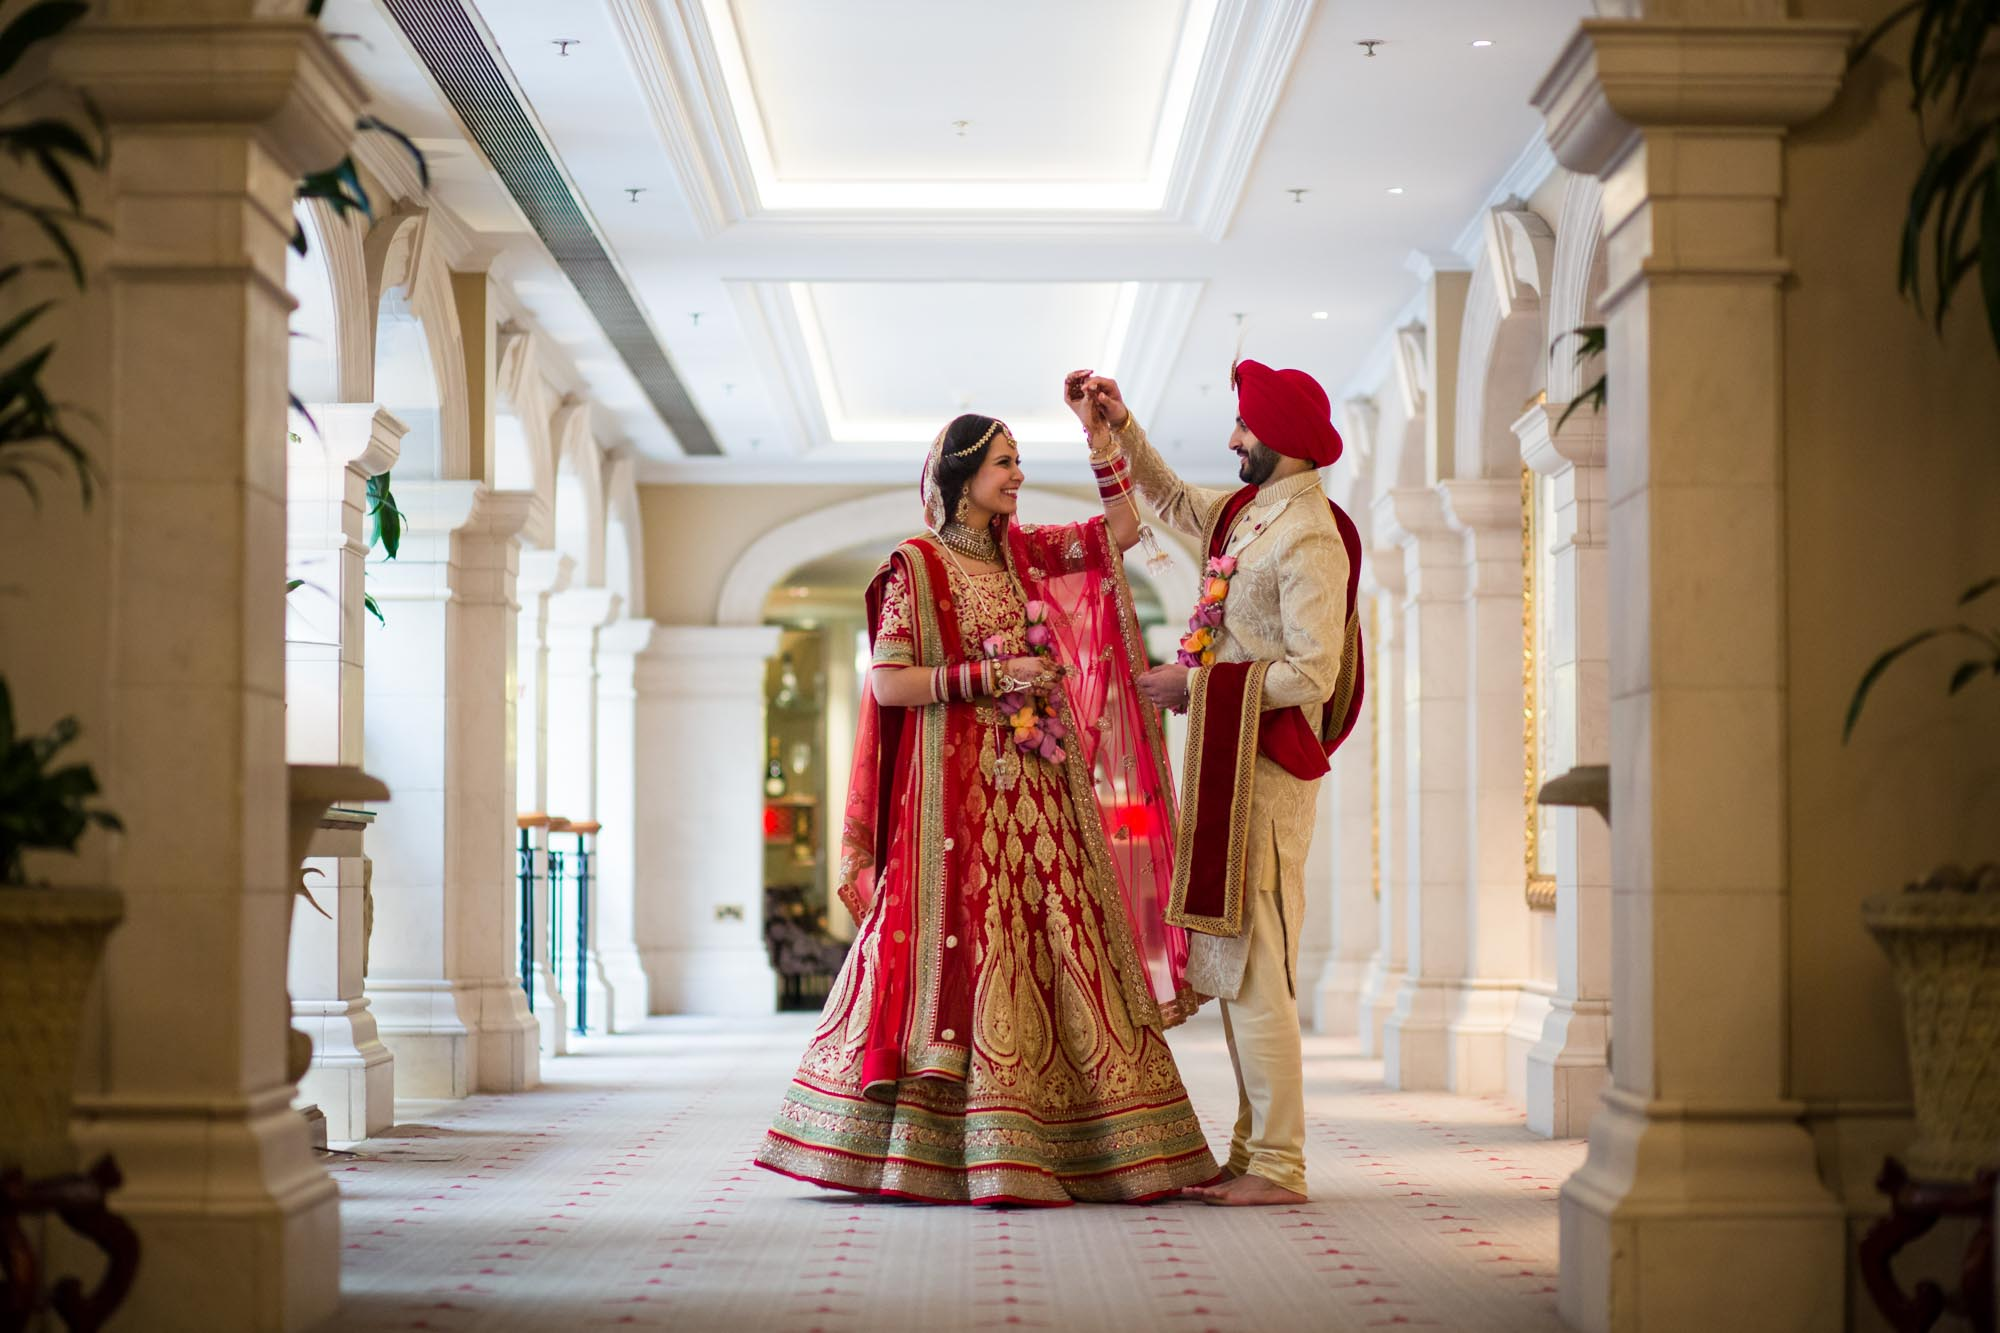 Sikh wedding photographer, The Landmark London